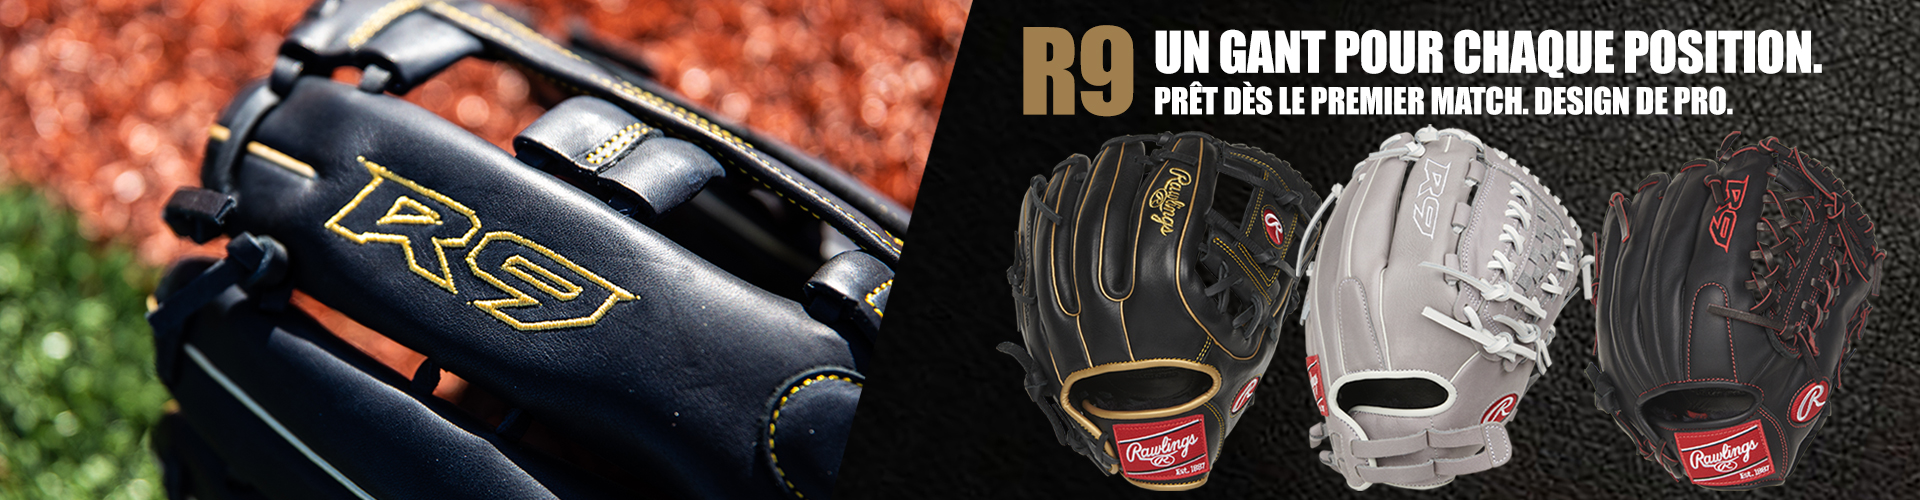 Shop Rawlings Beball Gloves Including The Versatile R9 Glove Available for Baseball and Softball. Let's Find What Fits Your Game This Season At Source For Sports.